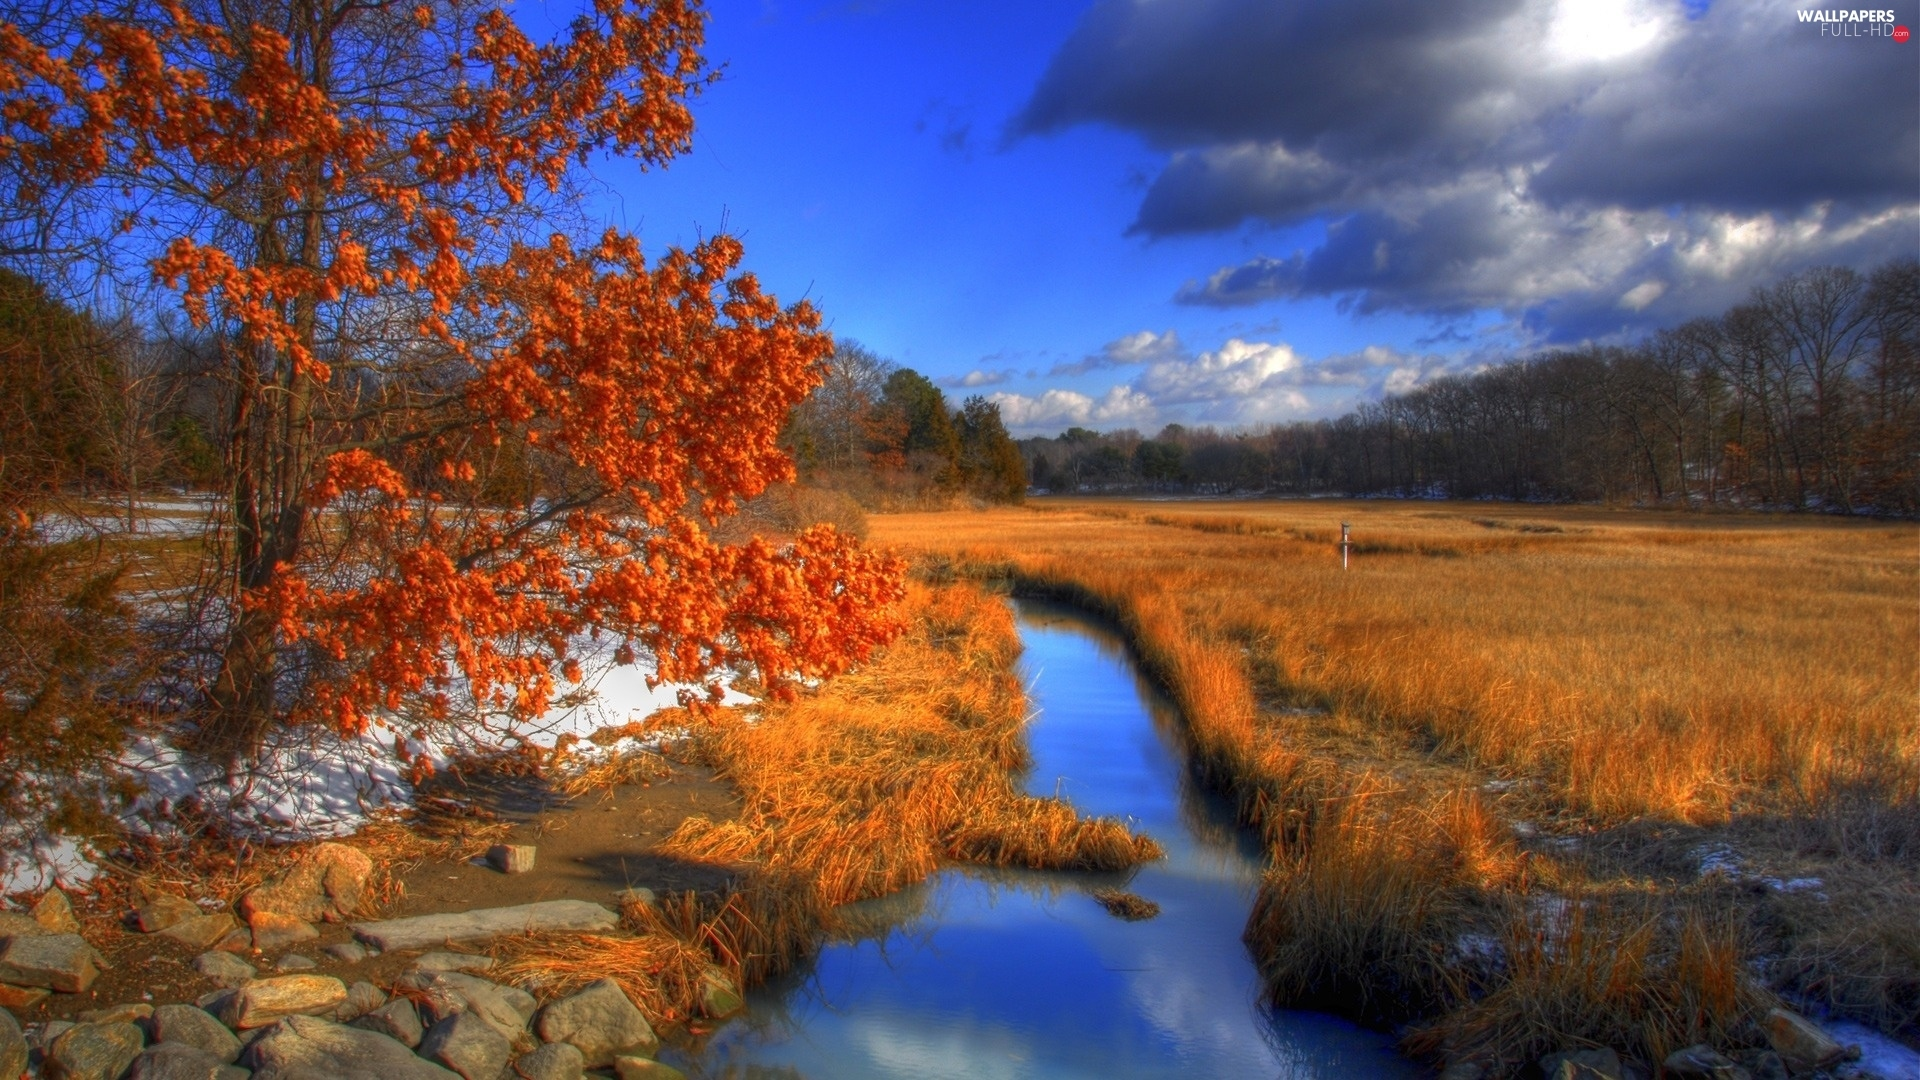 forest, Meadow, grass, autumn, trees, River